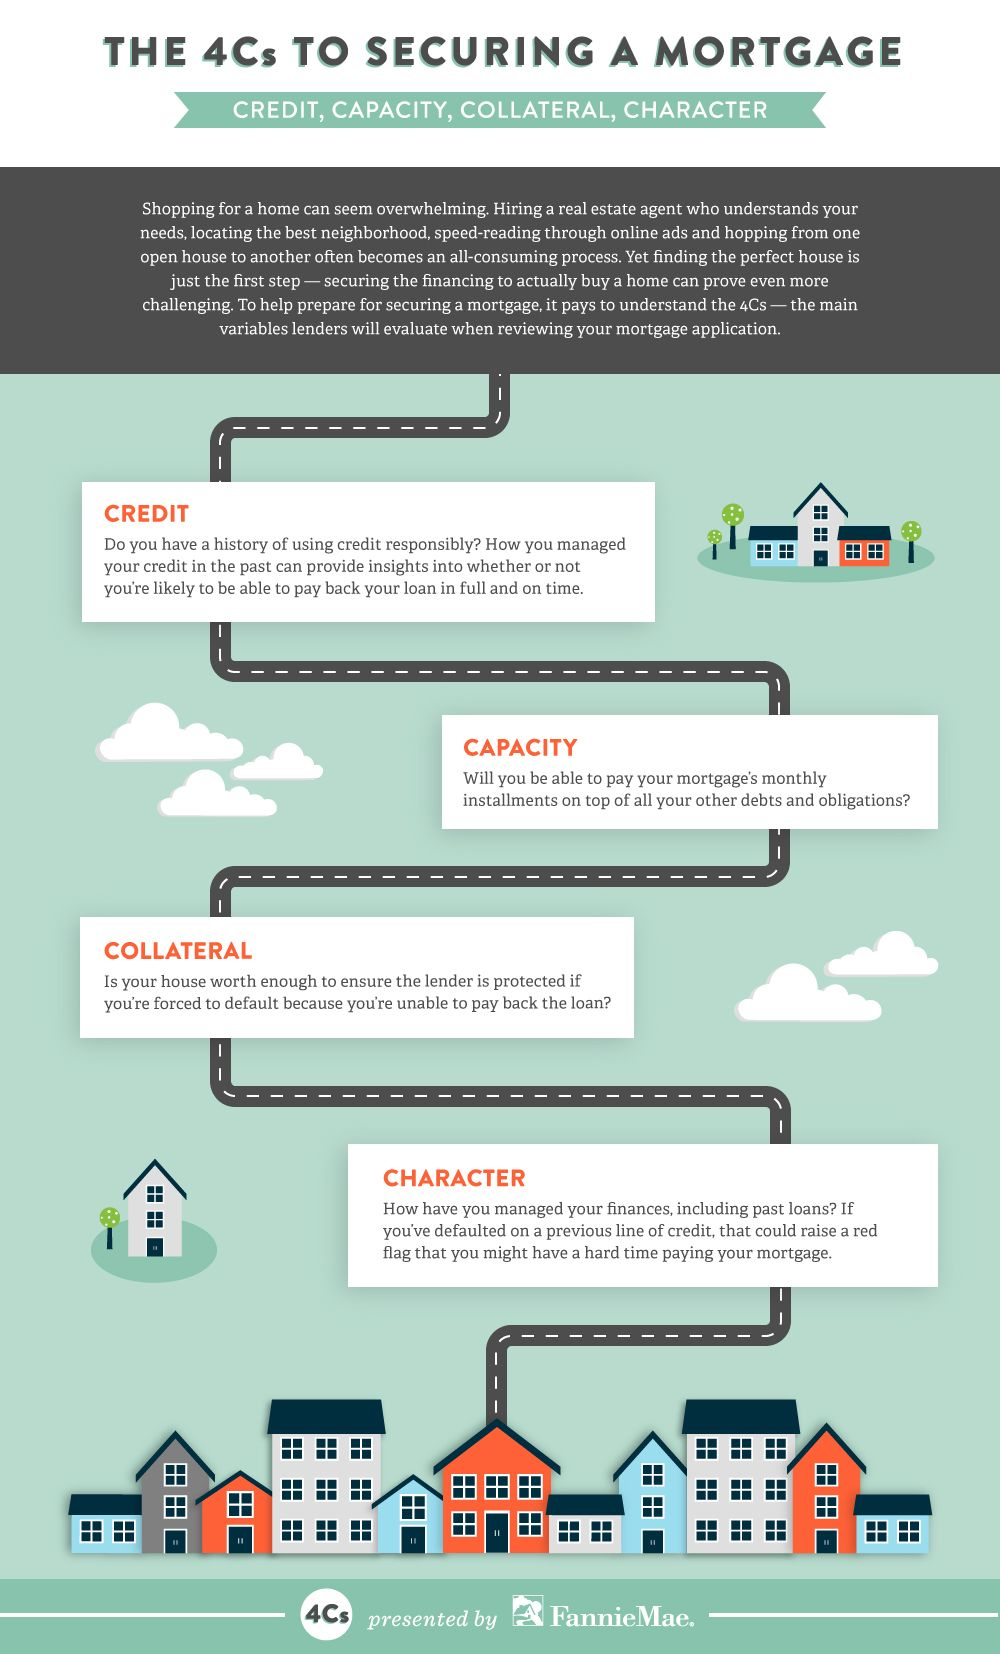 4C's of the mortgage process